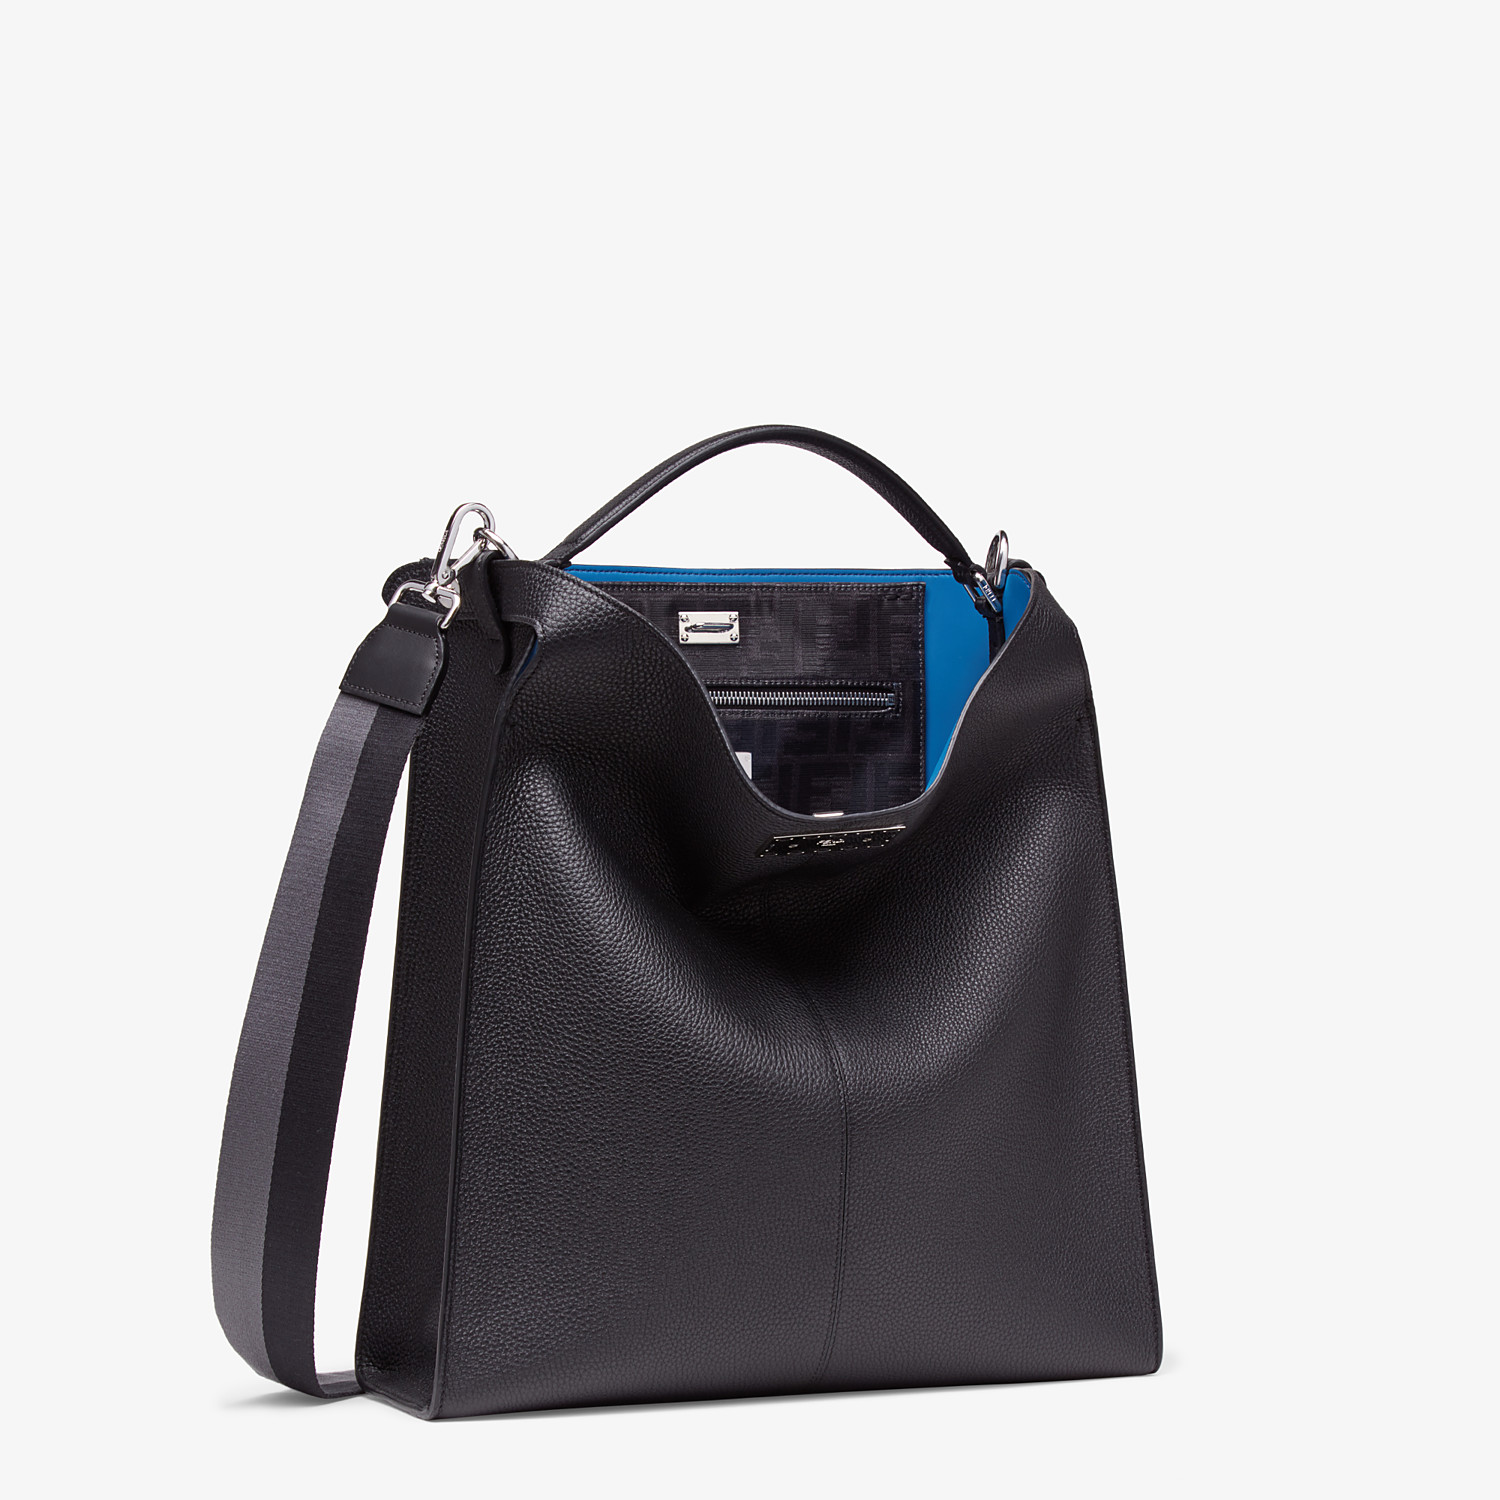 FENDI PEEKABOO X-LITE FIT - Black, calf leather bag - view 3 detail